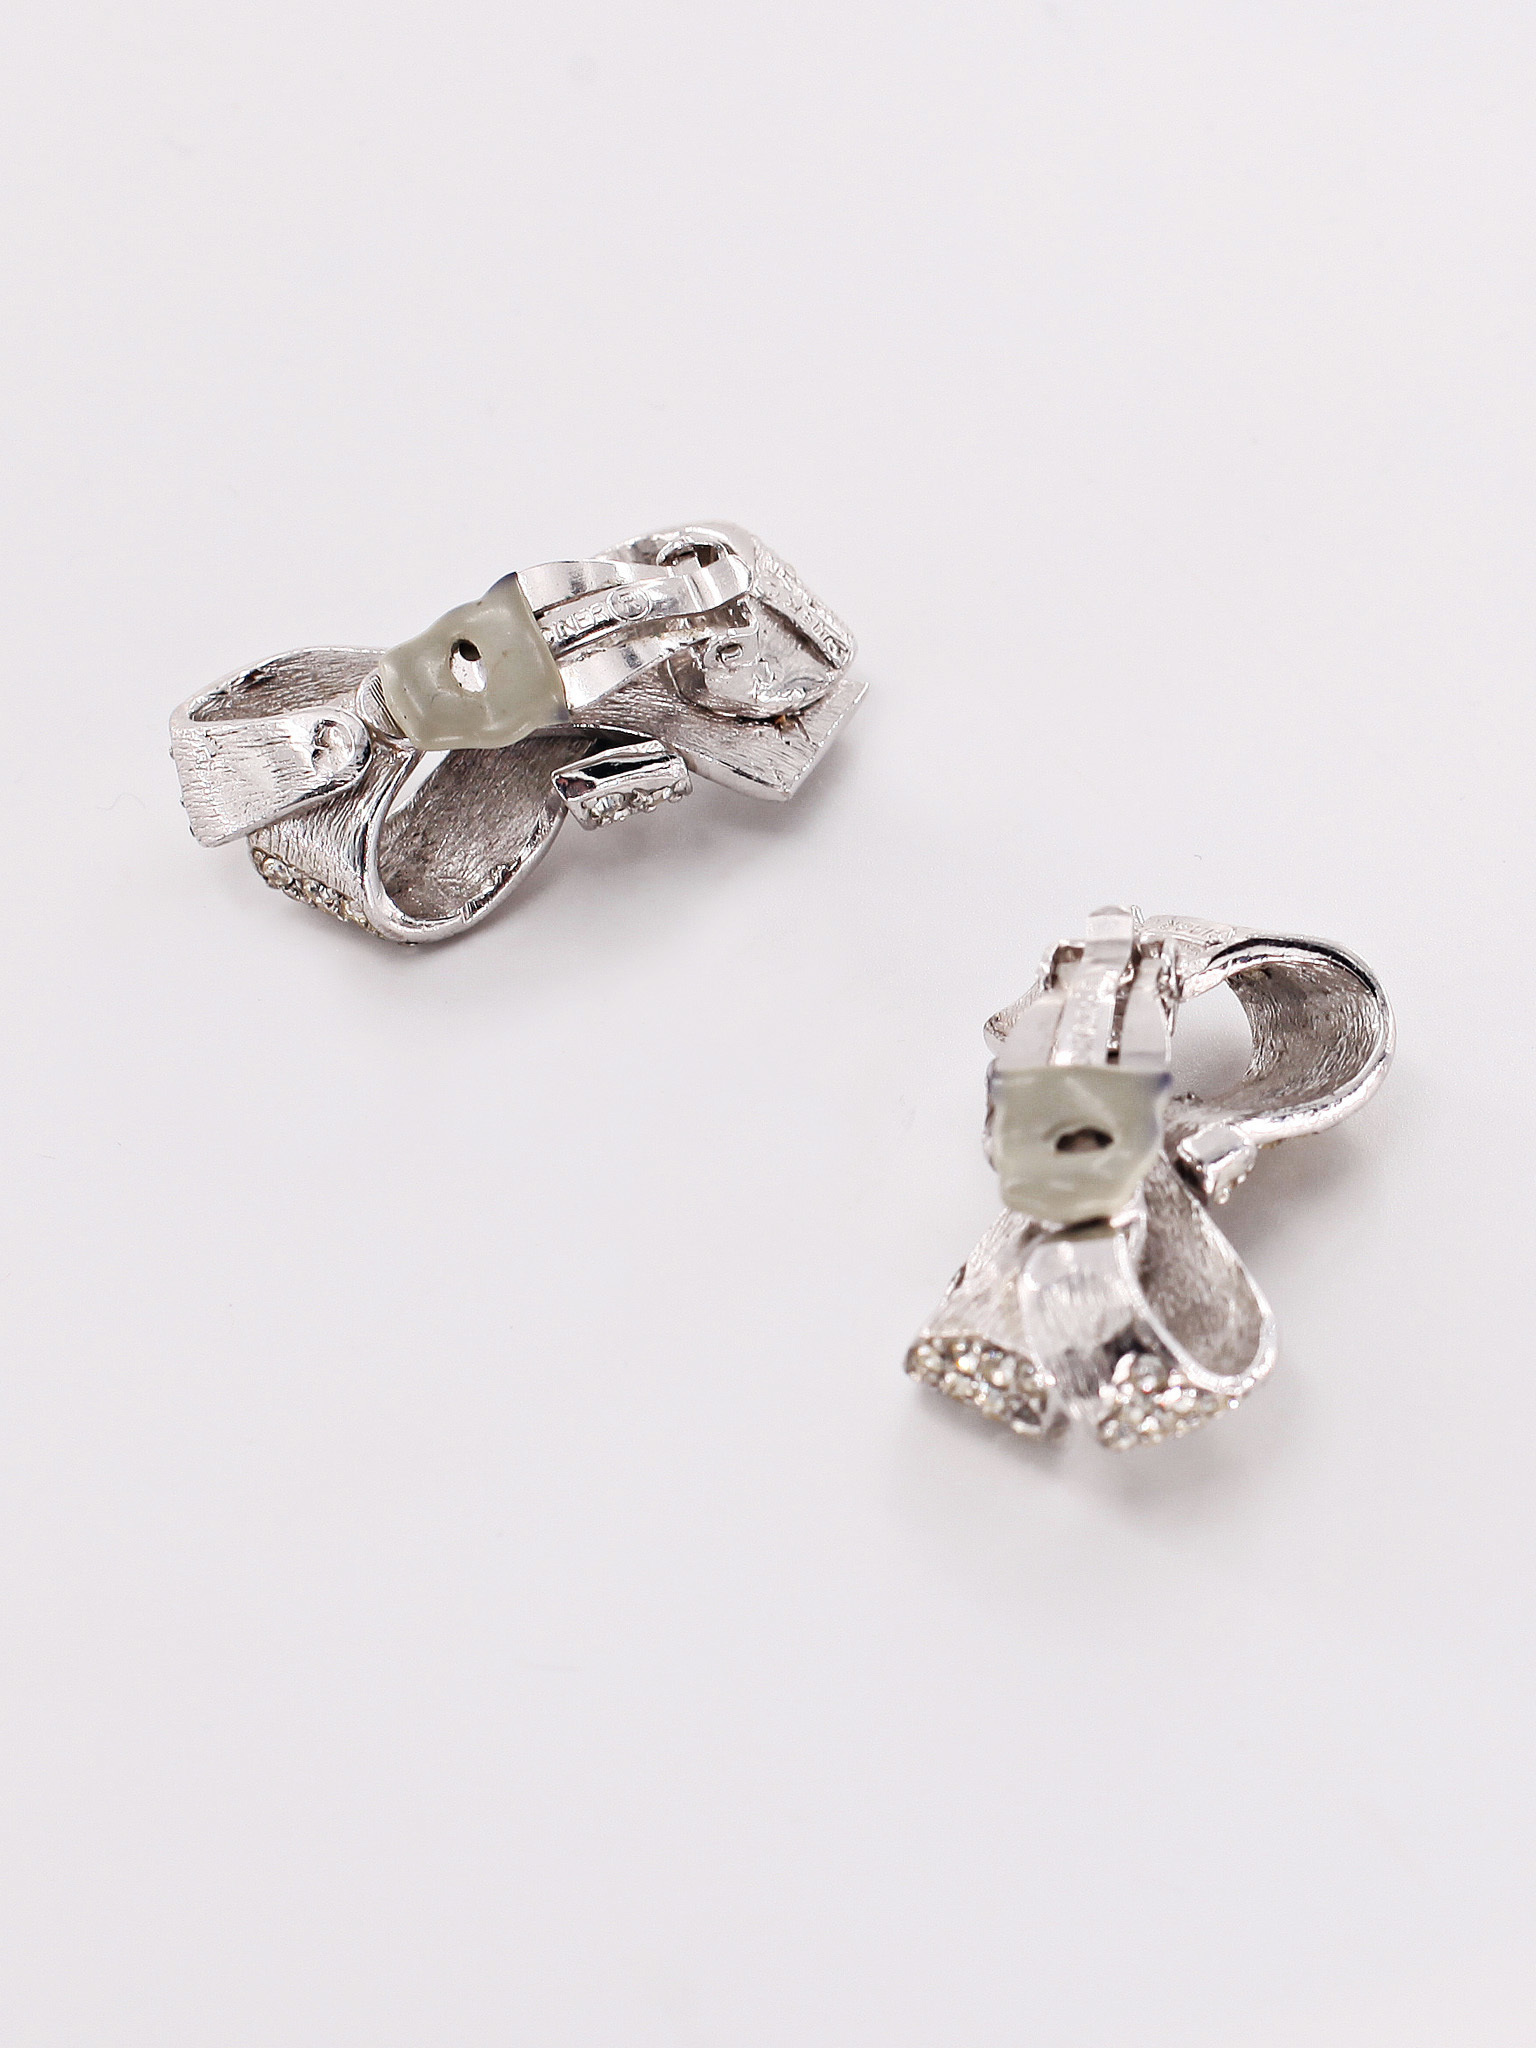 Bow-shaped earclips by Ciner